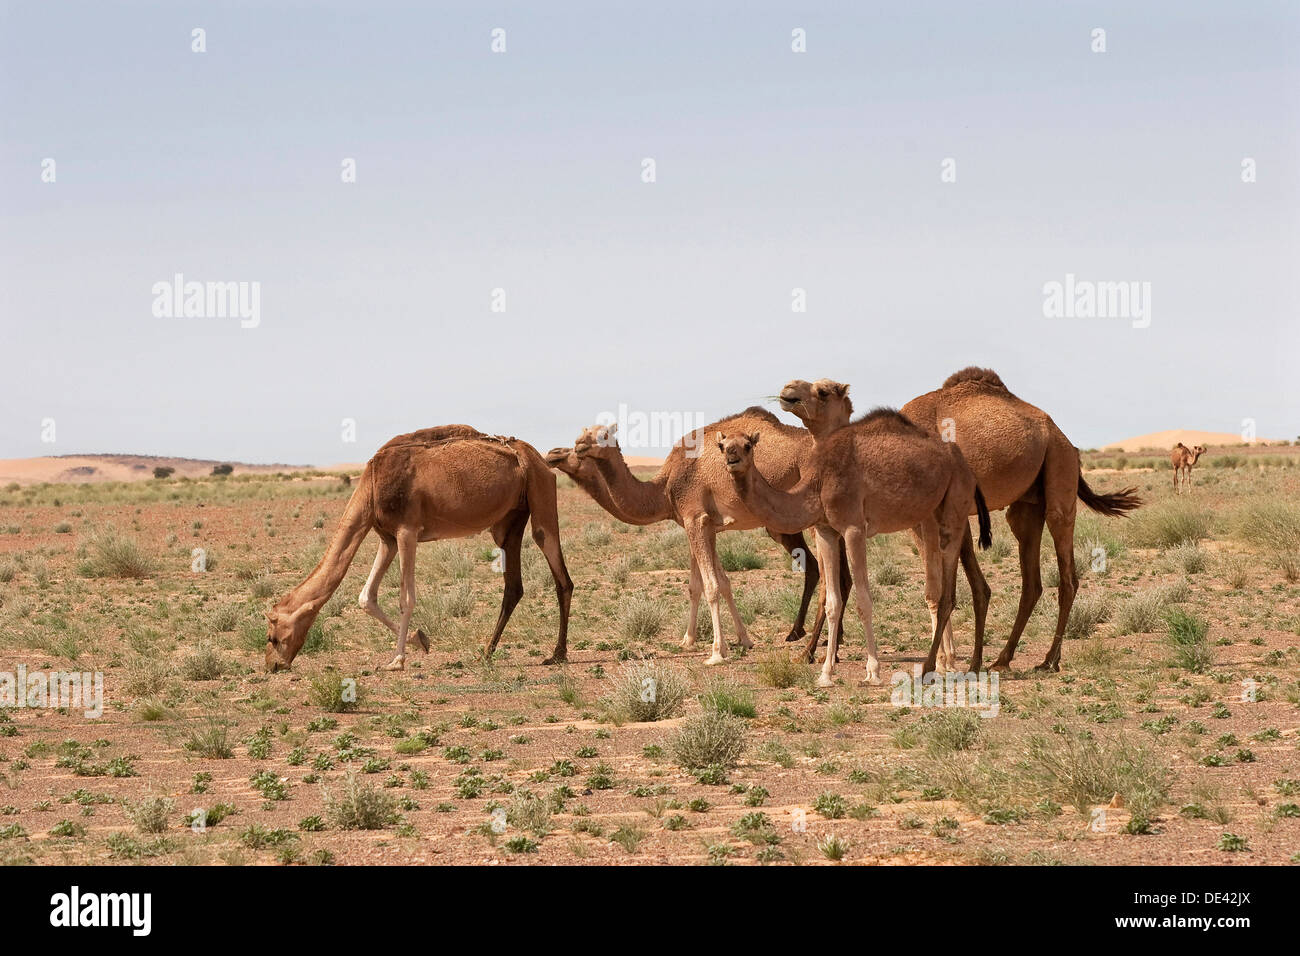 Dromedary camels grazing on grass in desert of Western Sahara after recent rare rainfall, Mauritania - Stock Image